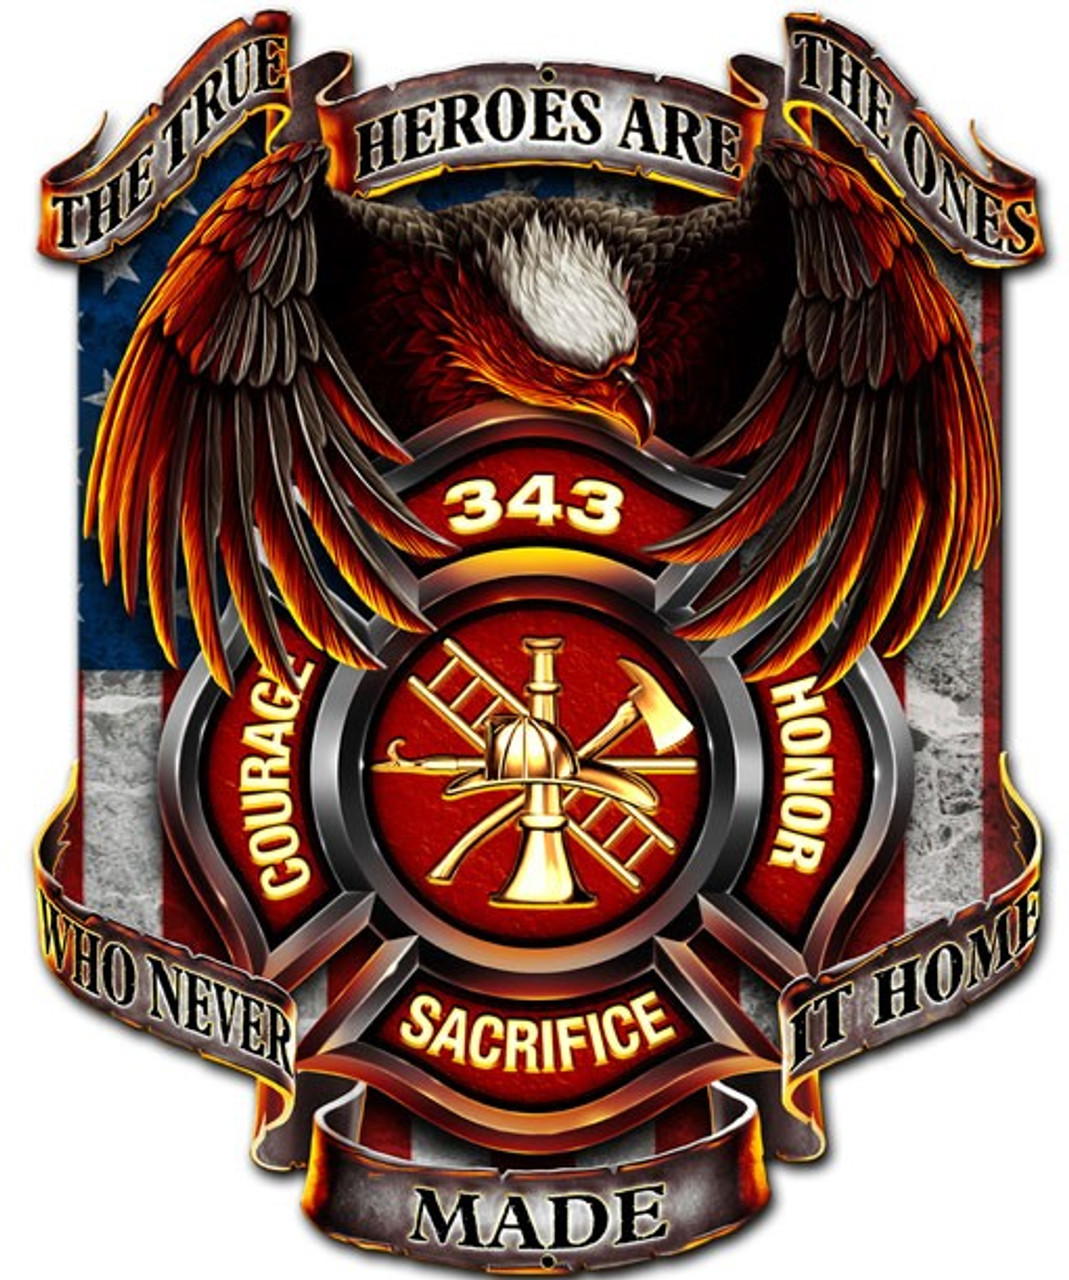 The True Heroes Metal Sign 14 x 17 Inches